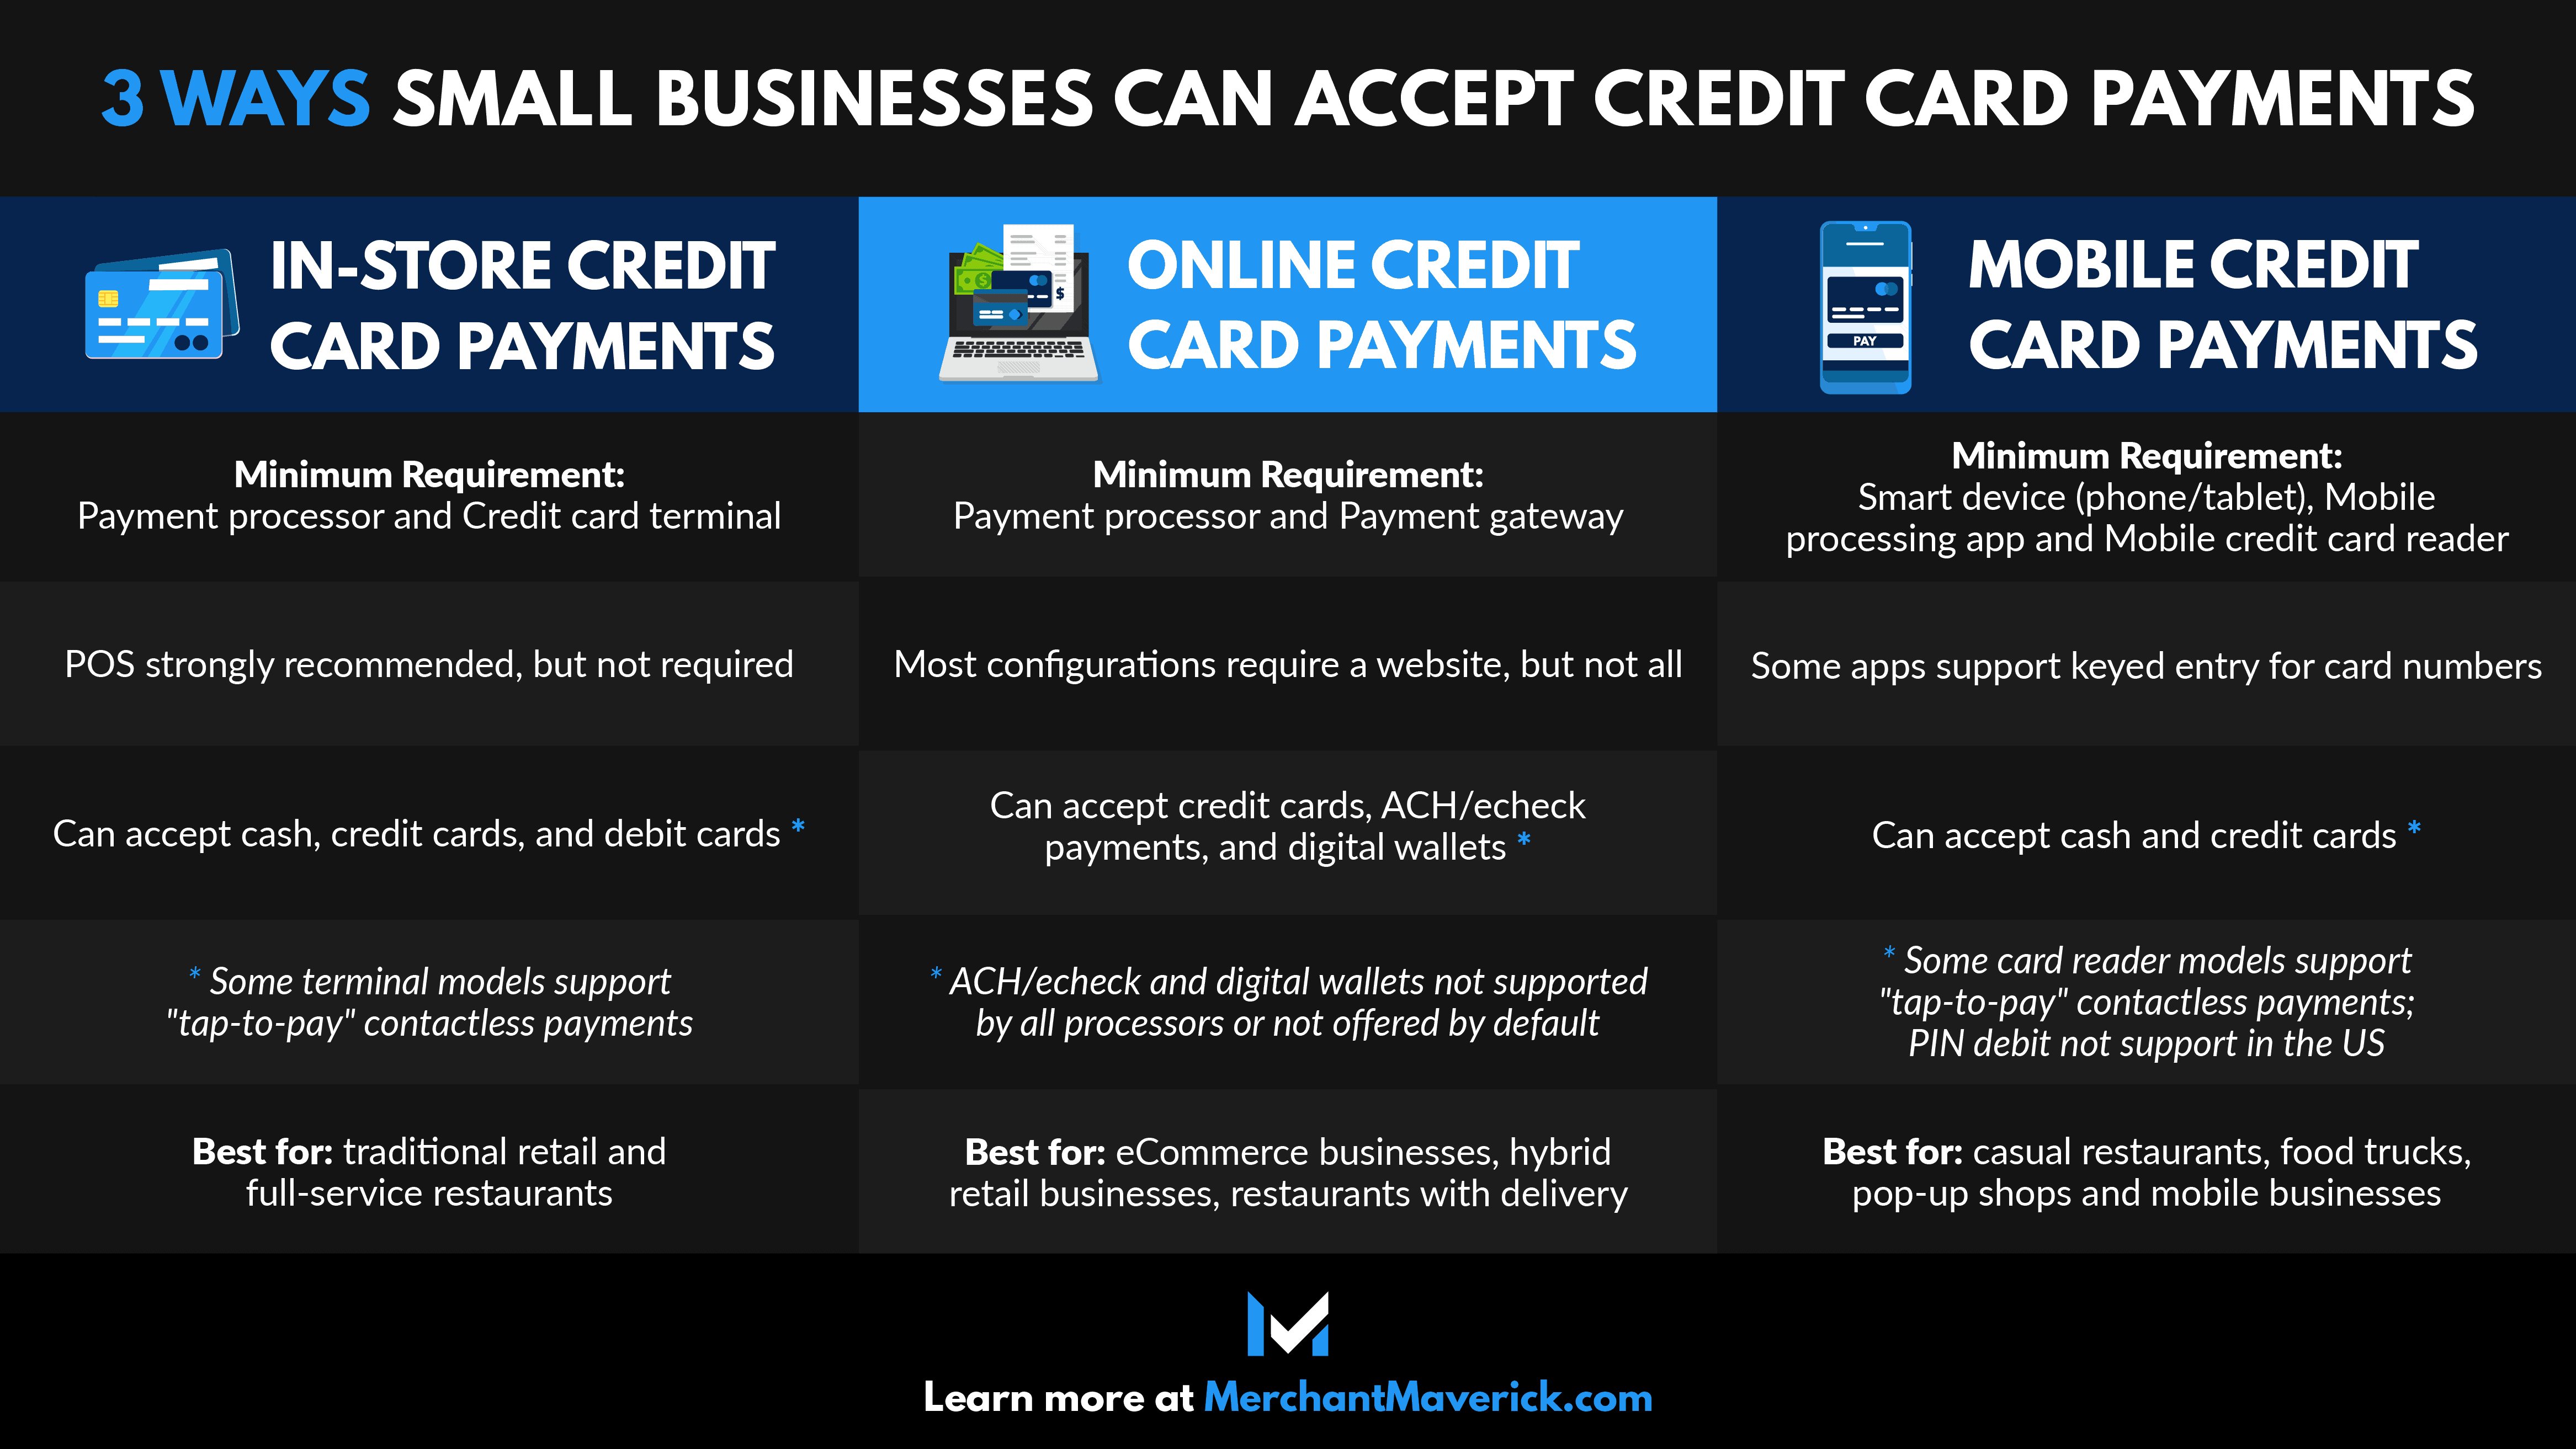 How to accept credit card payments for small business